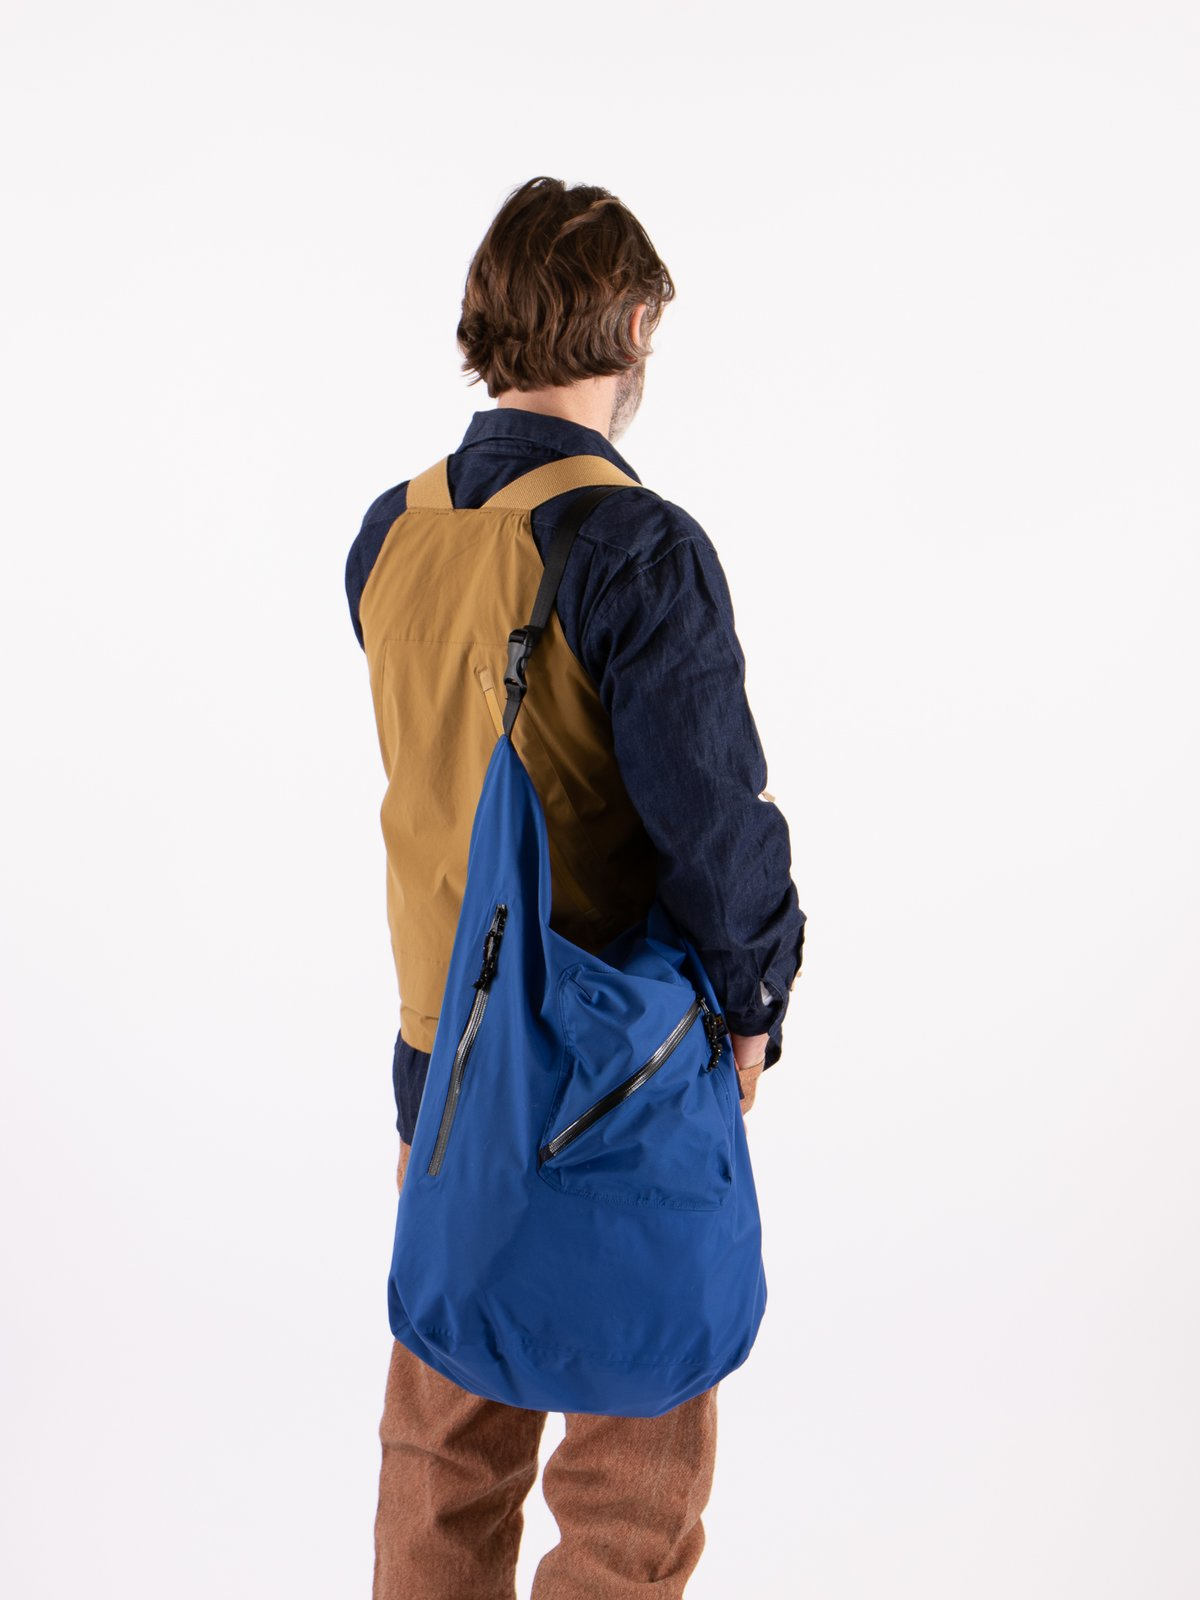 Blue Roll Nylon Shoulder Bag - Image 2